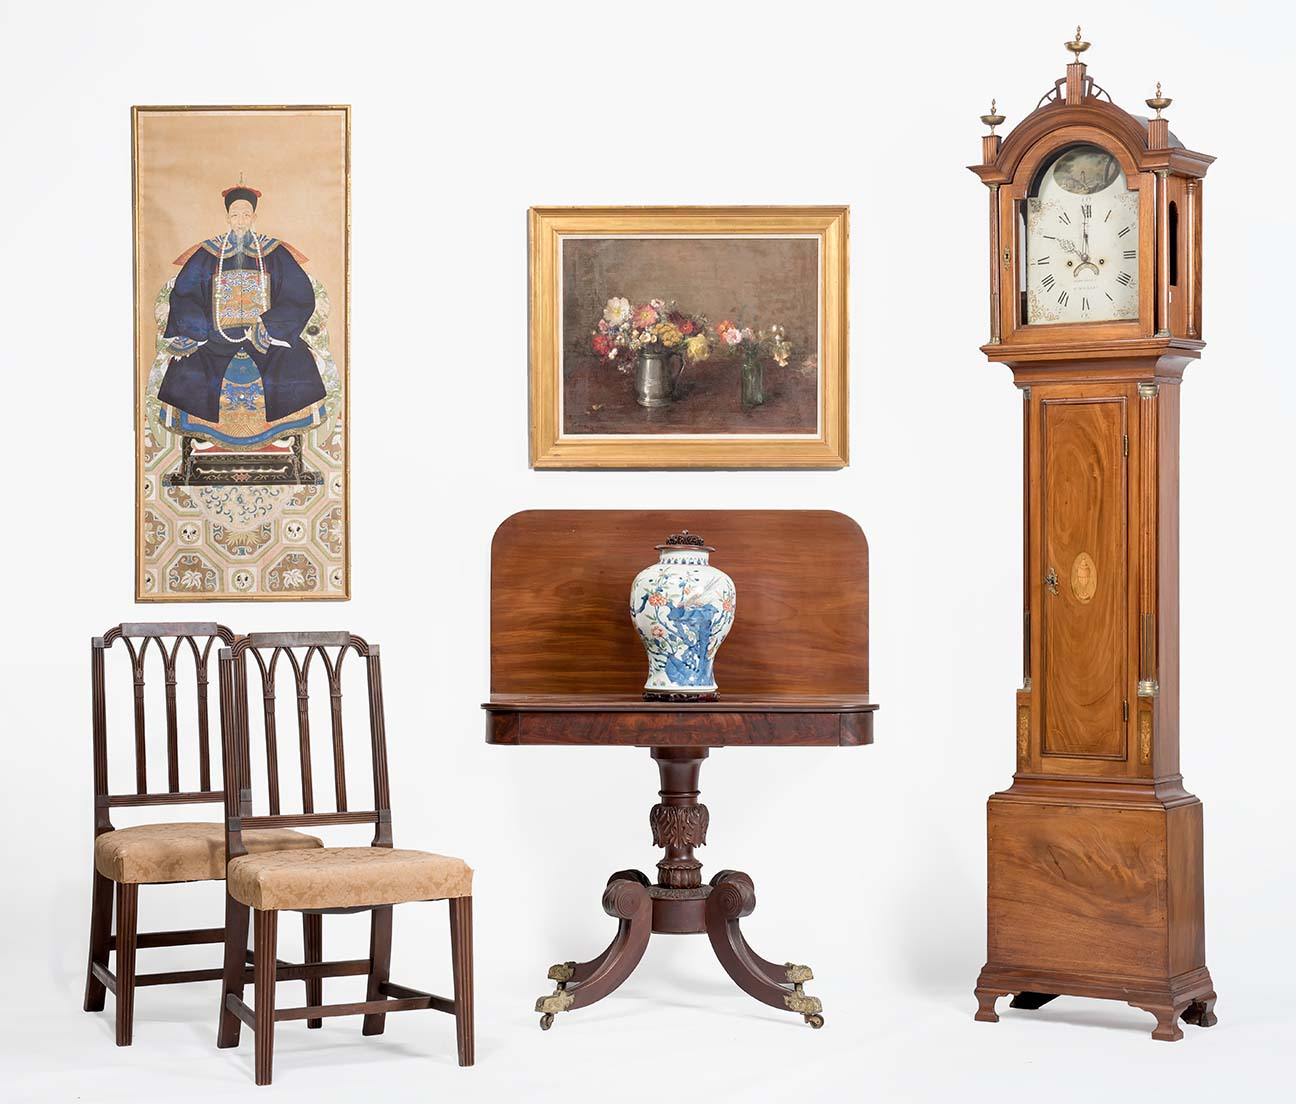 Maple tall case clock, the dial marked R. Perkins, Jaffrey No. 71. Pair  pierced back Chippendale side chairs with fan-carved crests and carved  ears, ... - 09/10/16.antiques.html